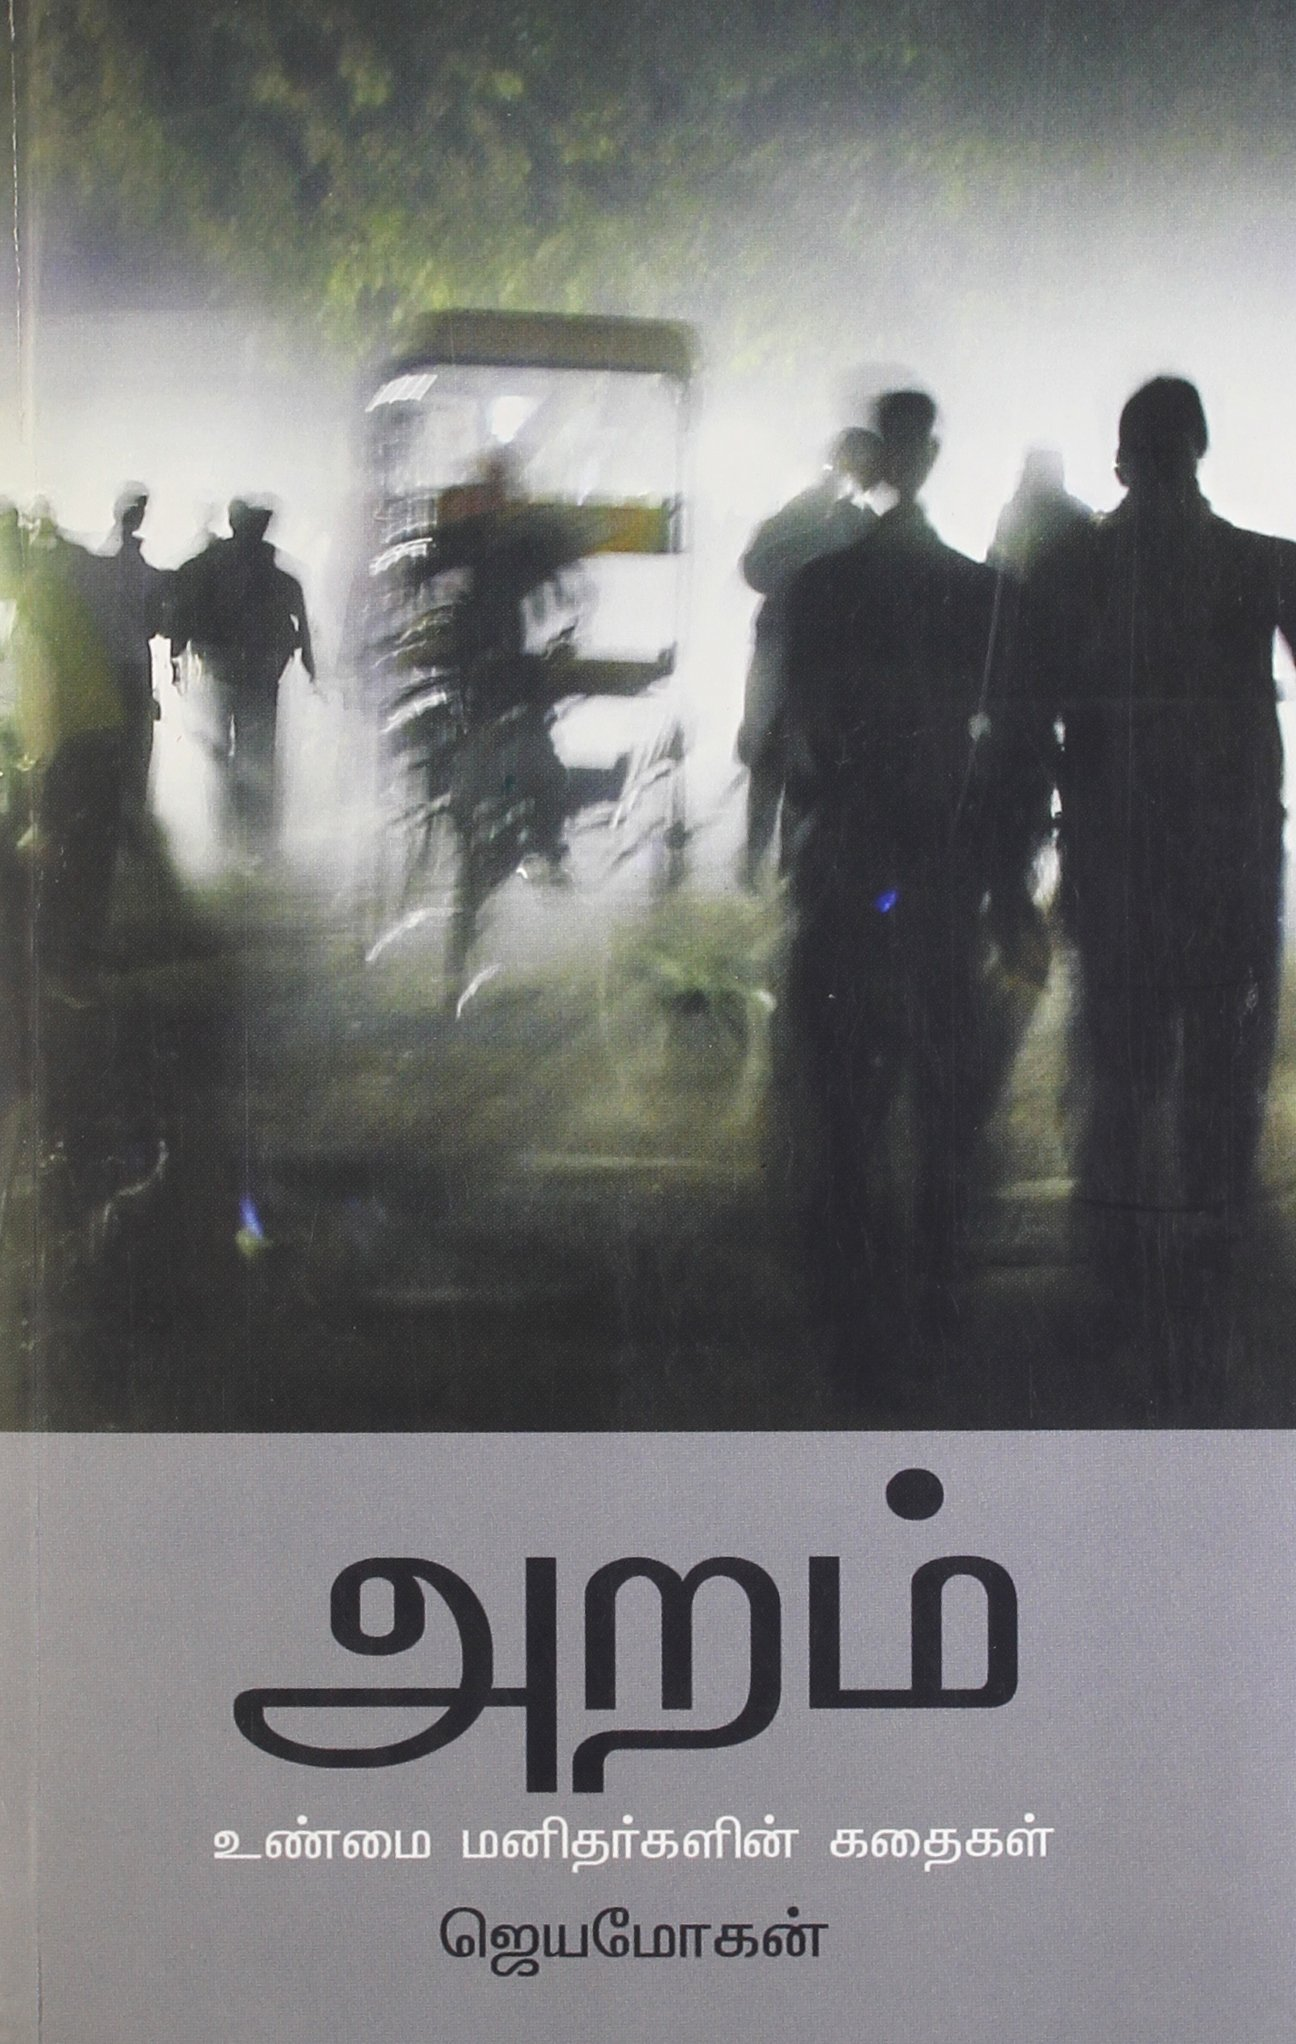 Pani Manidhan (Tamil novel)